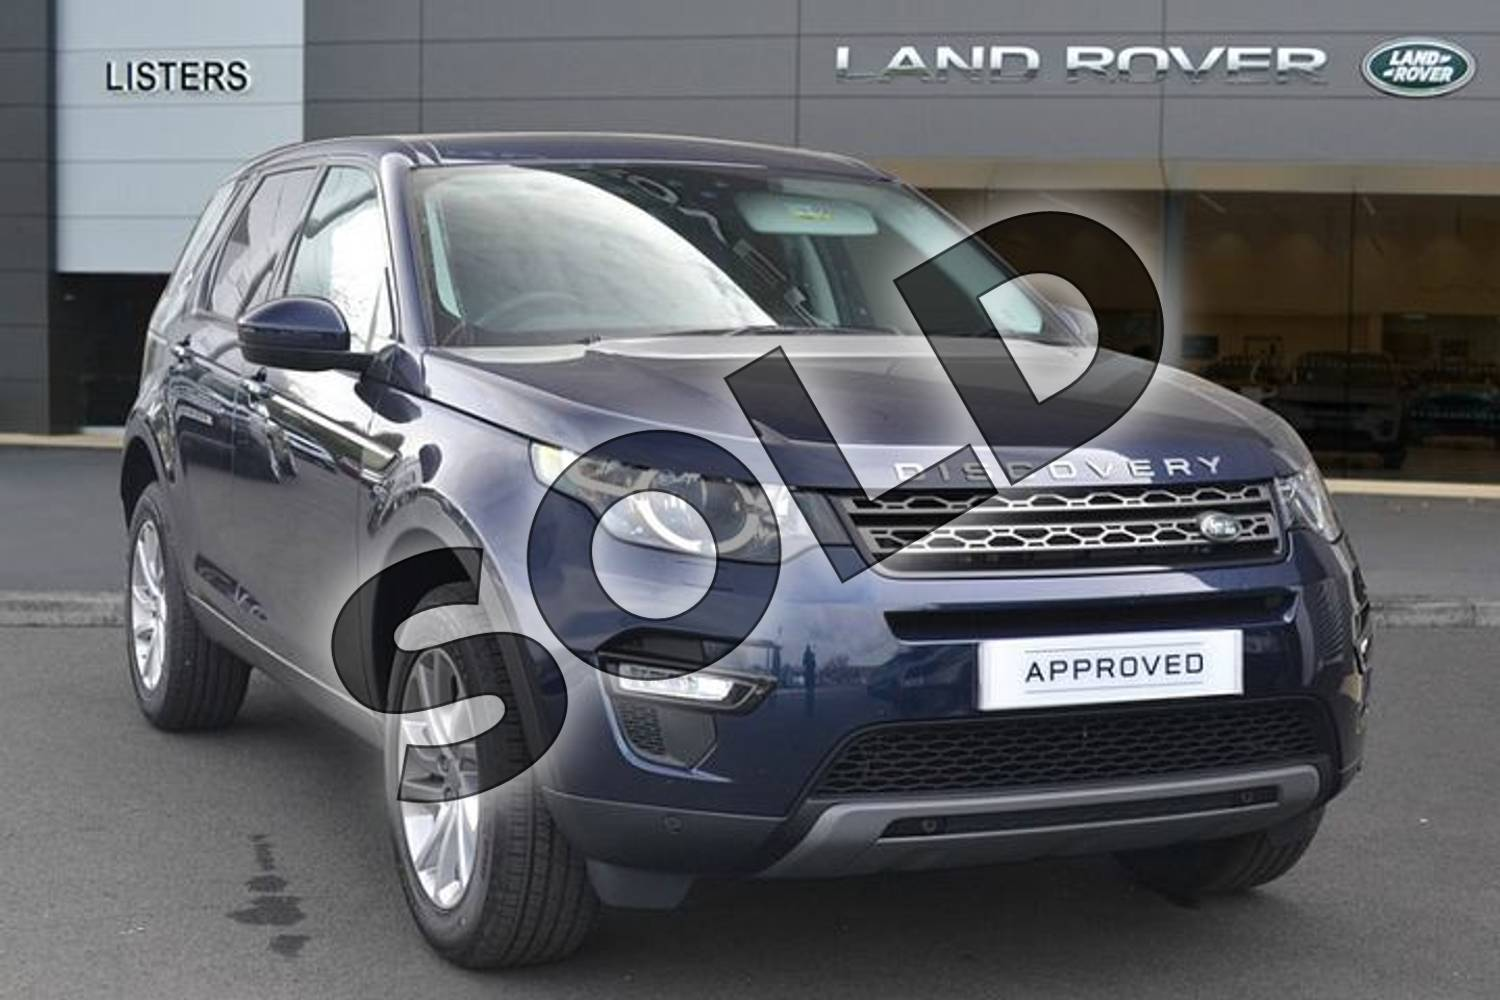 2019 Land Rover Discovery Sport Diesel SW 2.0 TD4 180 SE Tech 5dr Auto in Loire Blue at Listers Land Rover Hereford